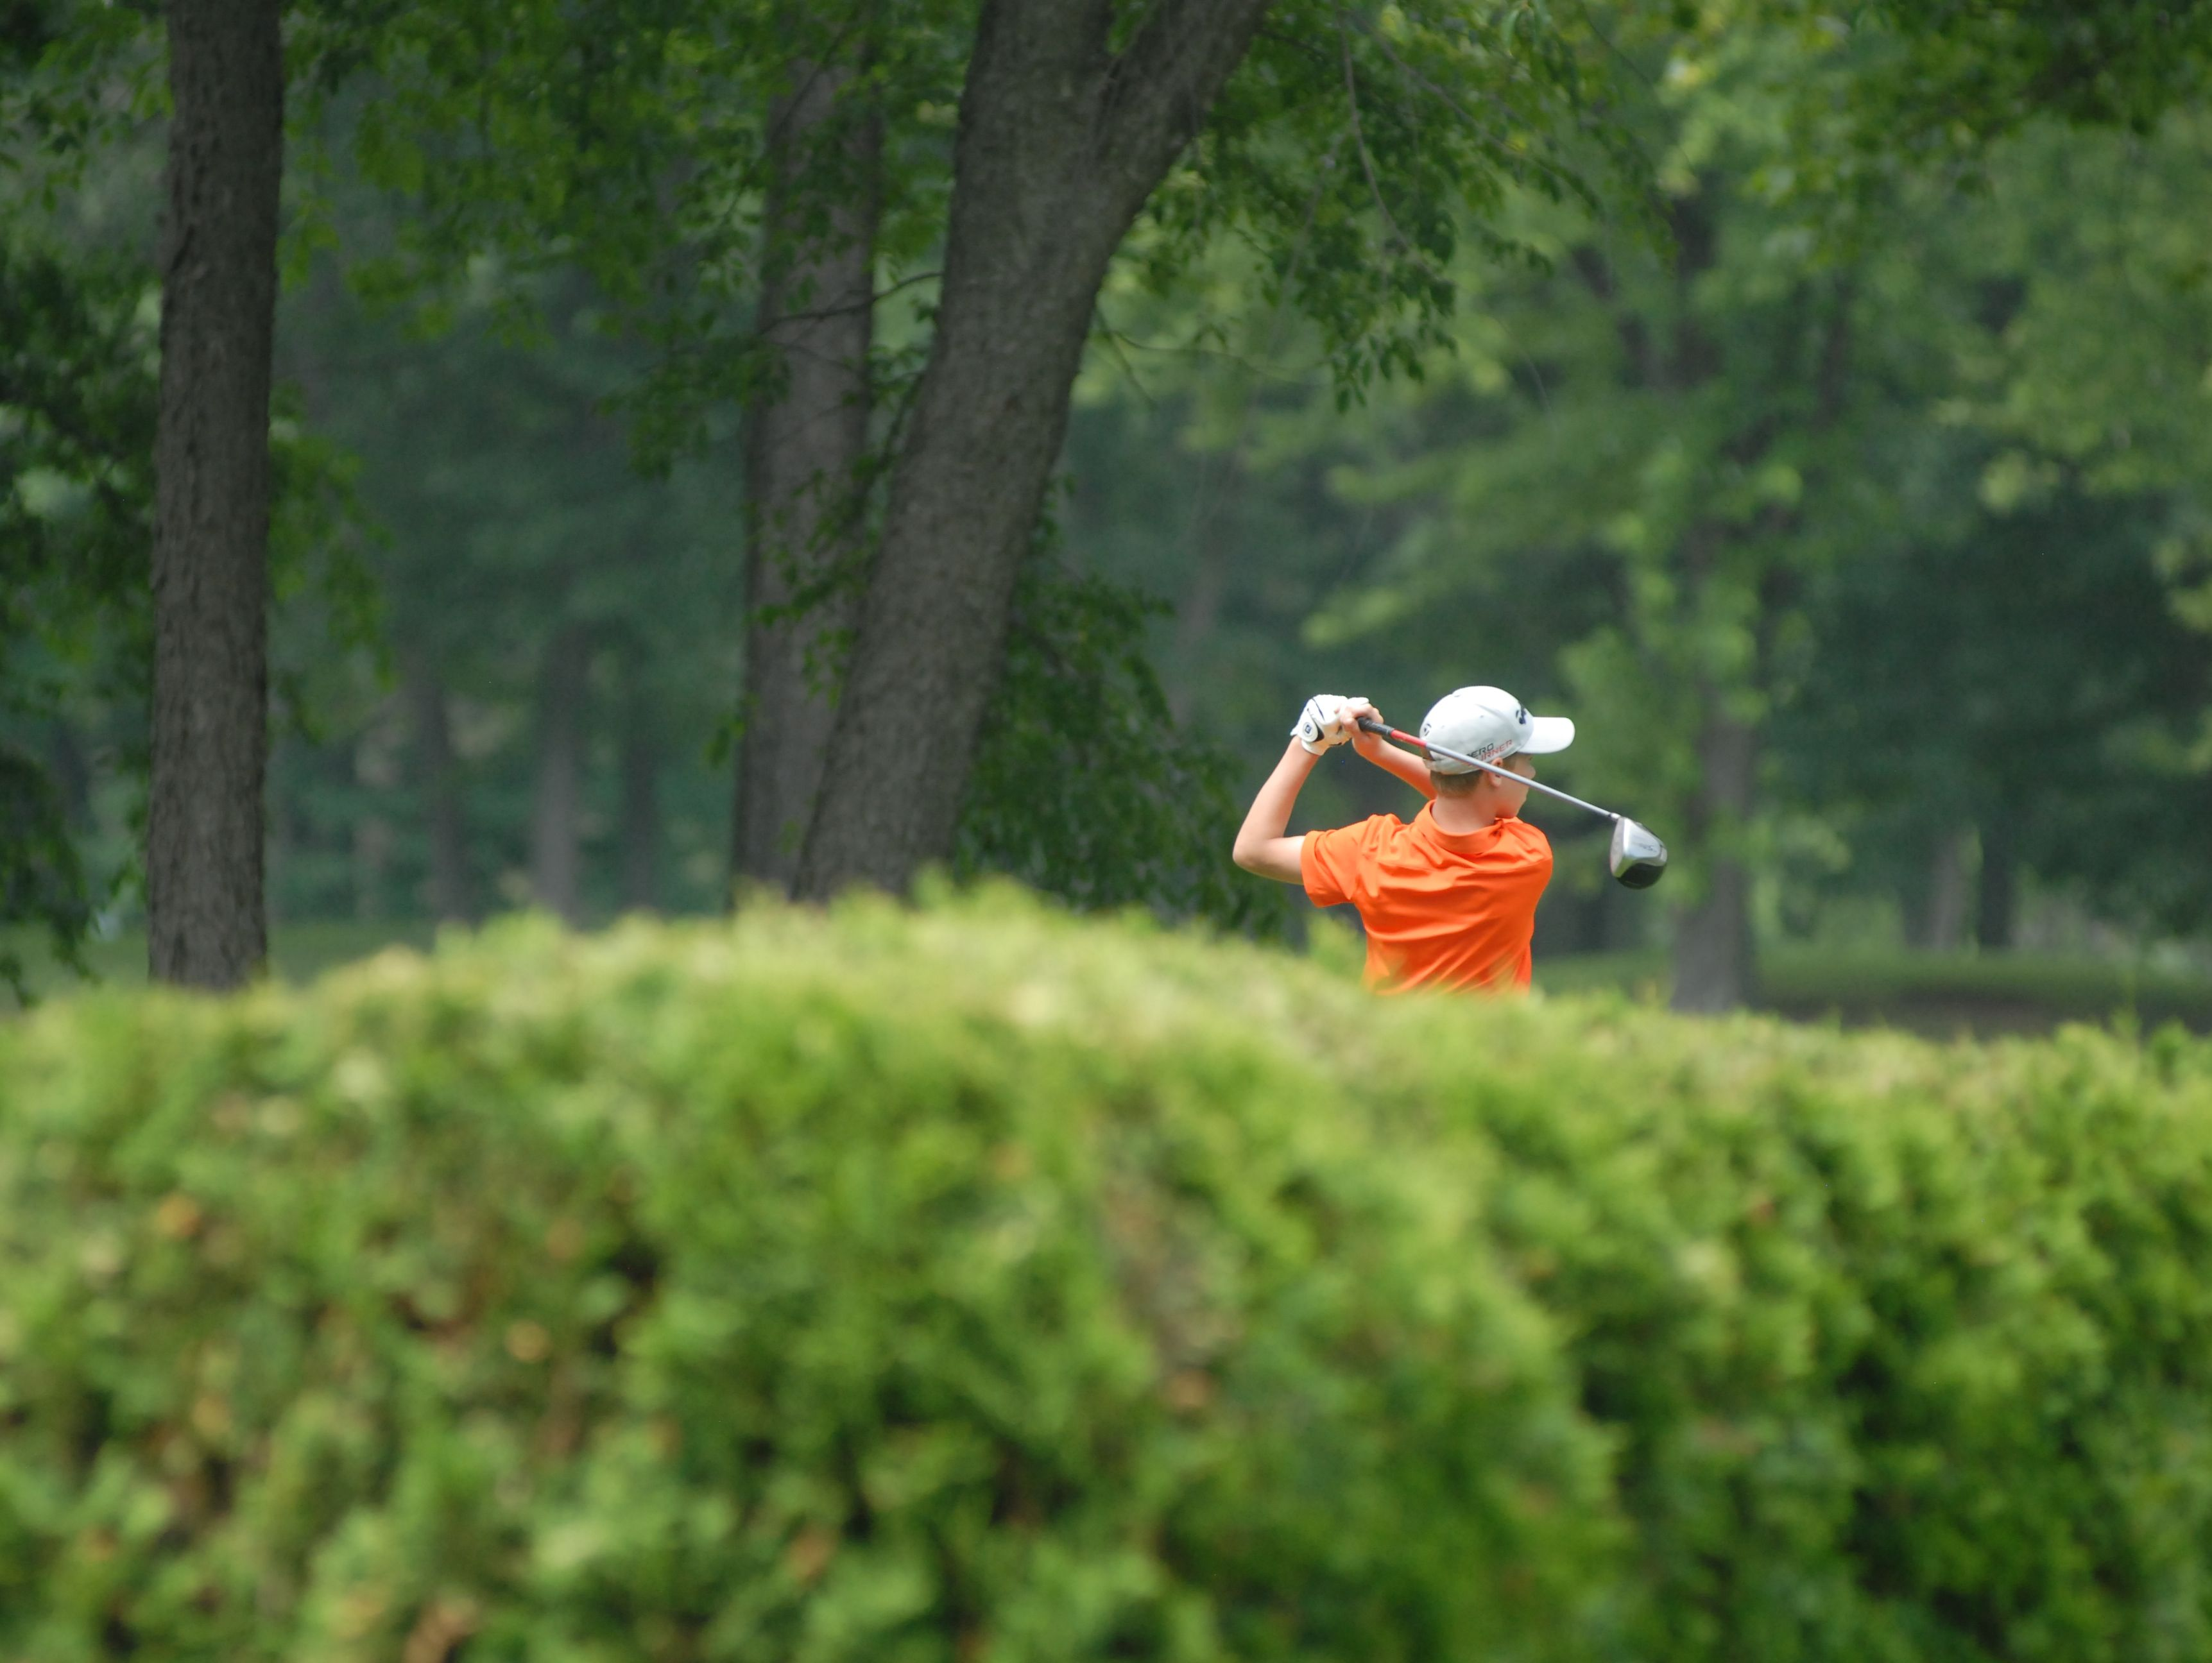 Almont's Jack Demara drives the ball at the Blue Water Junior Golf Tournament event at Port Huron Golf Club on July 8, 2016.